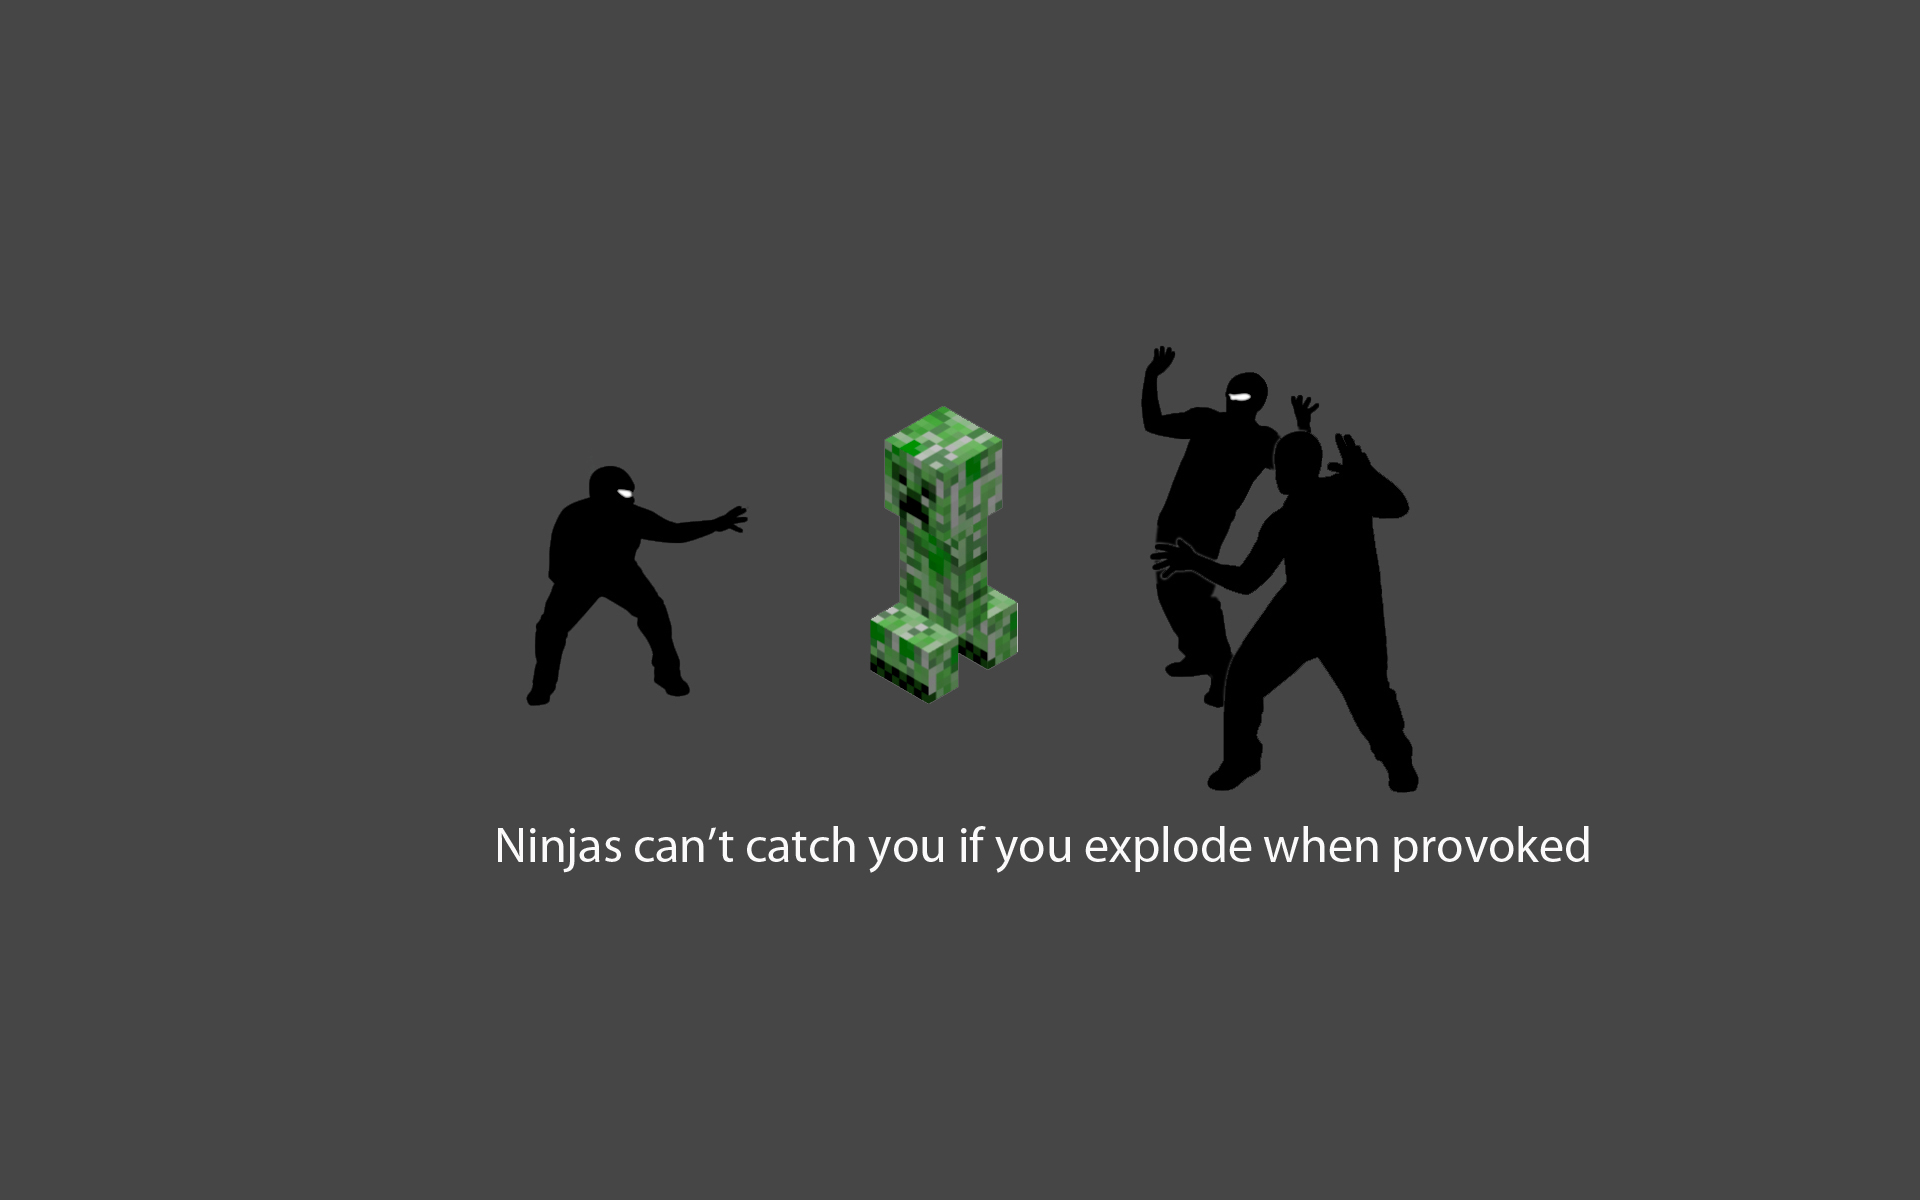 Ninjas cant catch you if minecraft wallpaper 1920x1200 8960 1920x1200